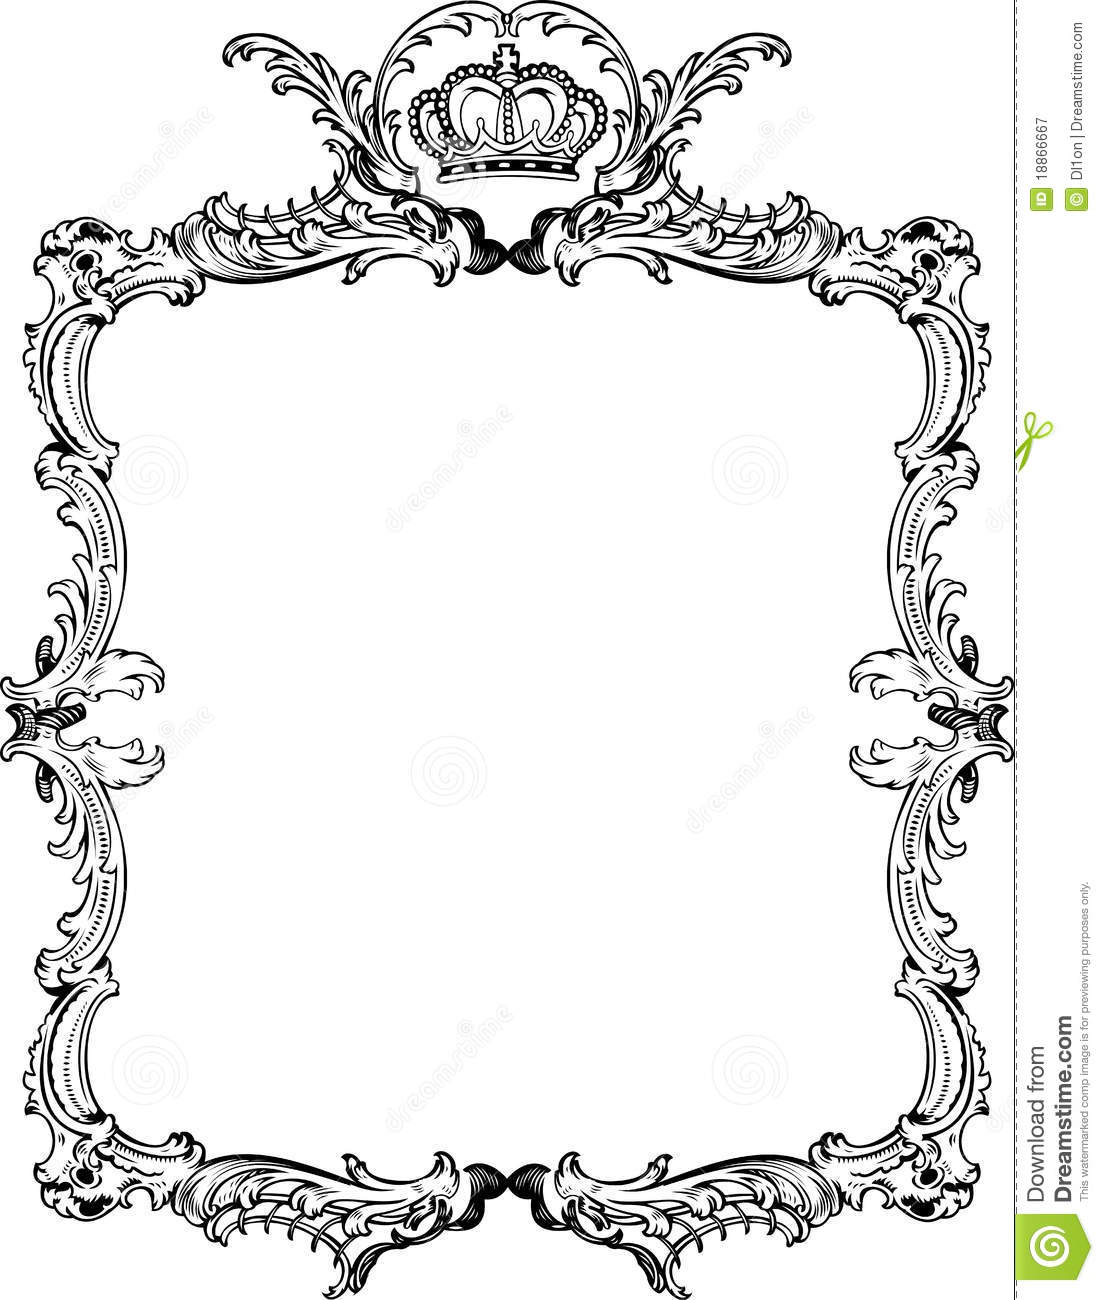 Decorative Vintage Ornate Frame Stock Vector